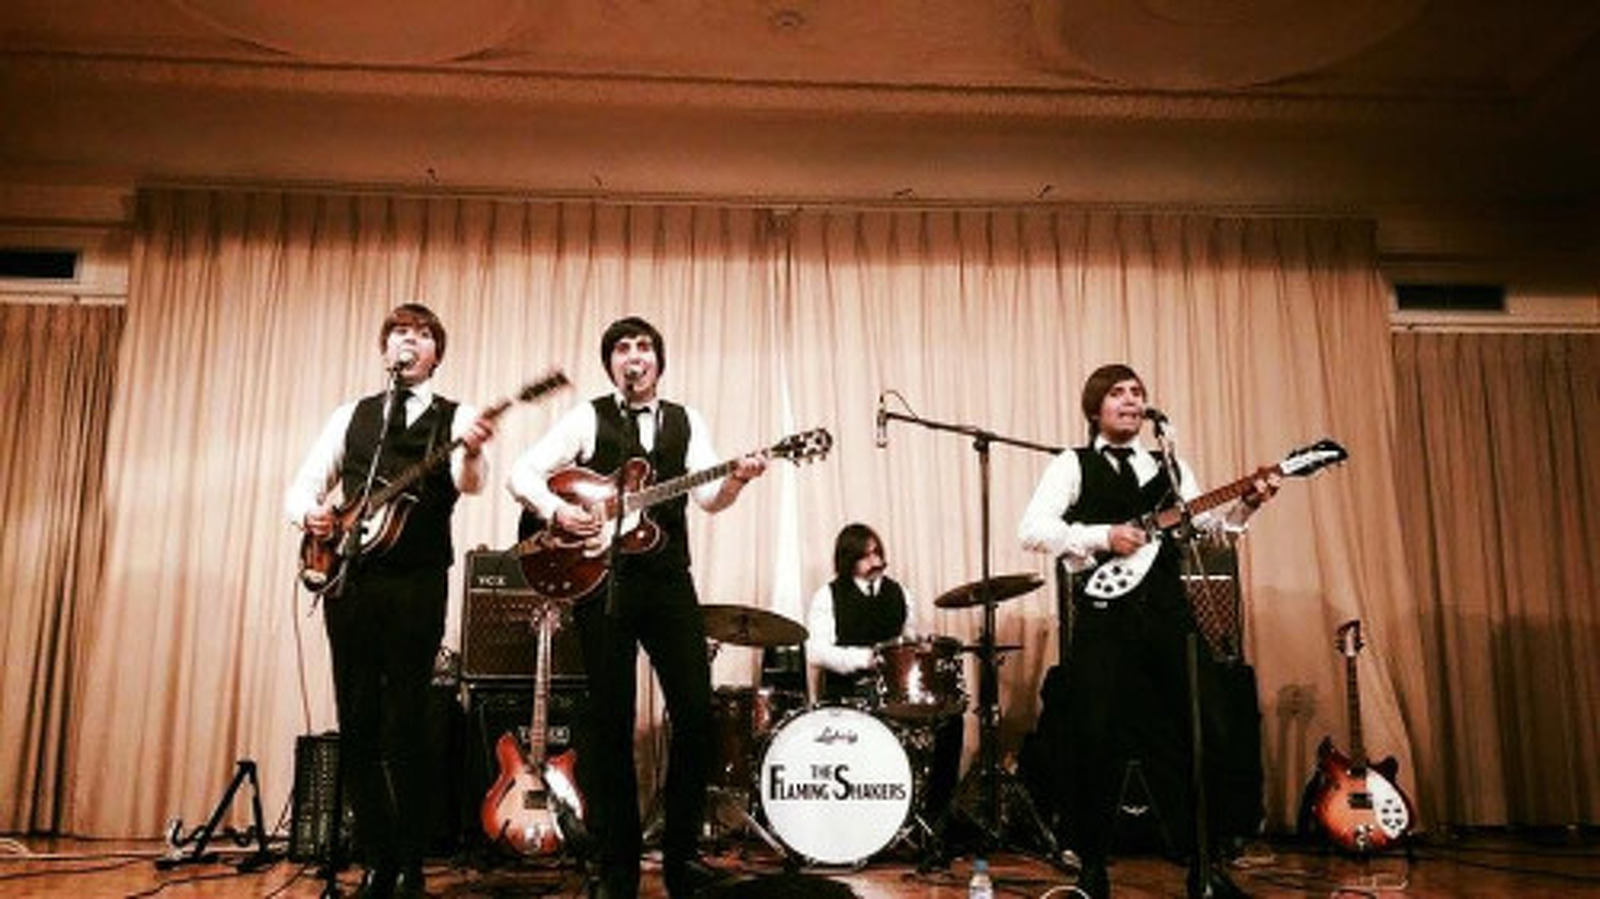 The Flaming Shakers